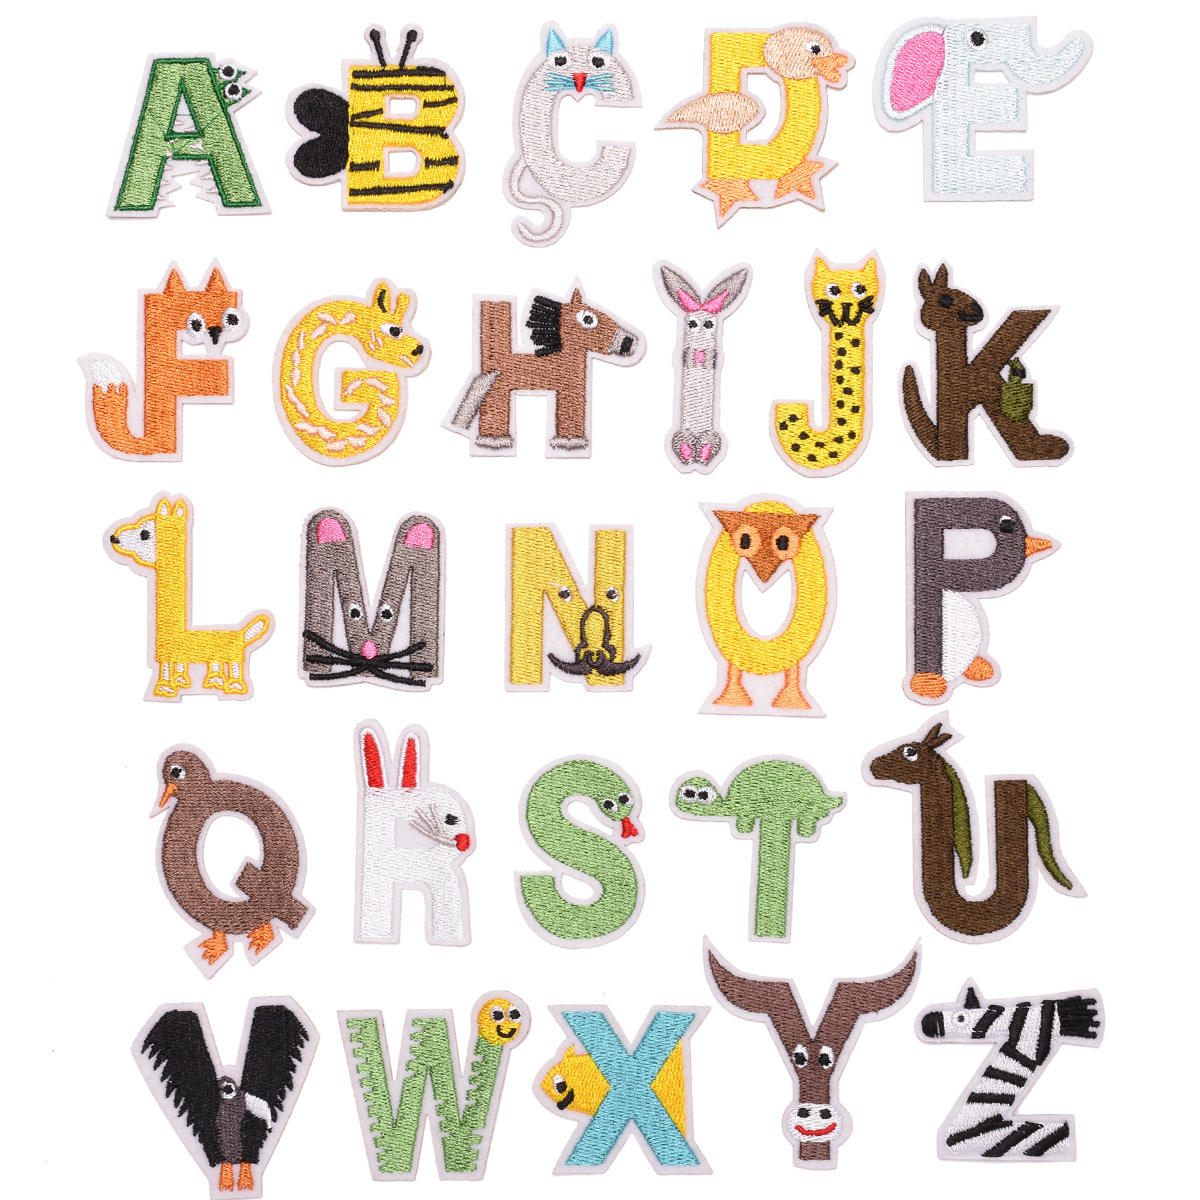 Cute Cartoon Letters Patch Alphabet Embroidered Applique For kids Clothes Letters Sew On Name Badge Patches